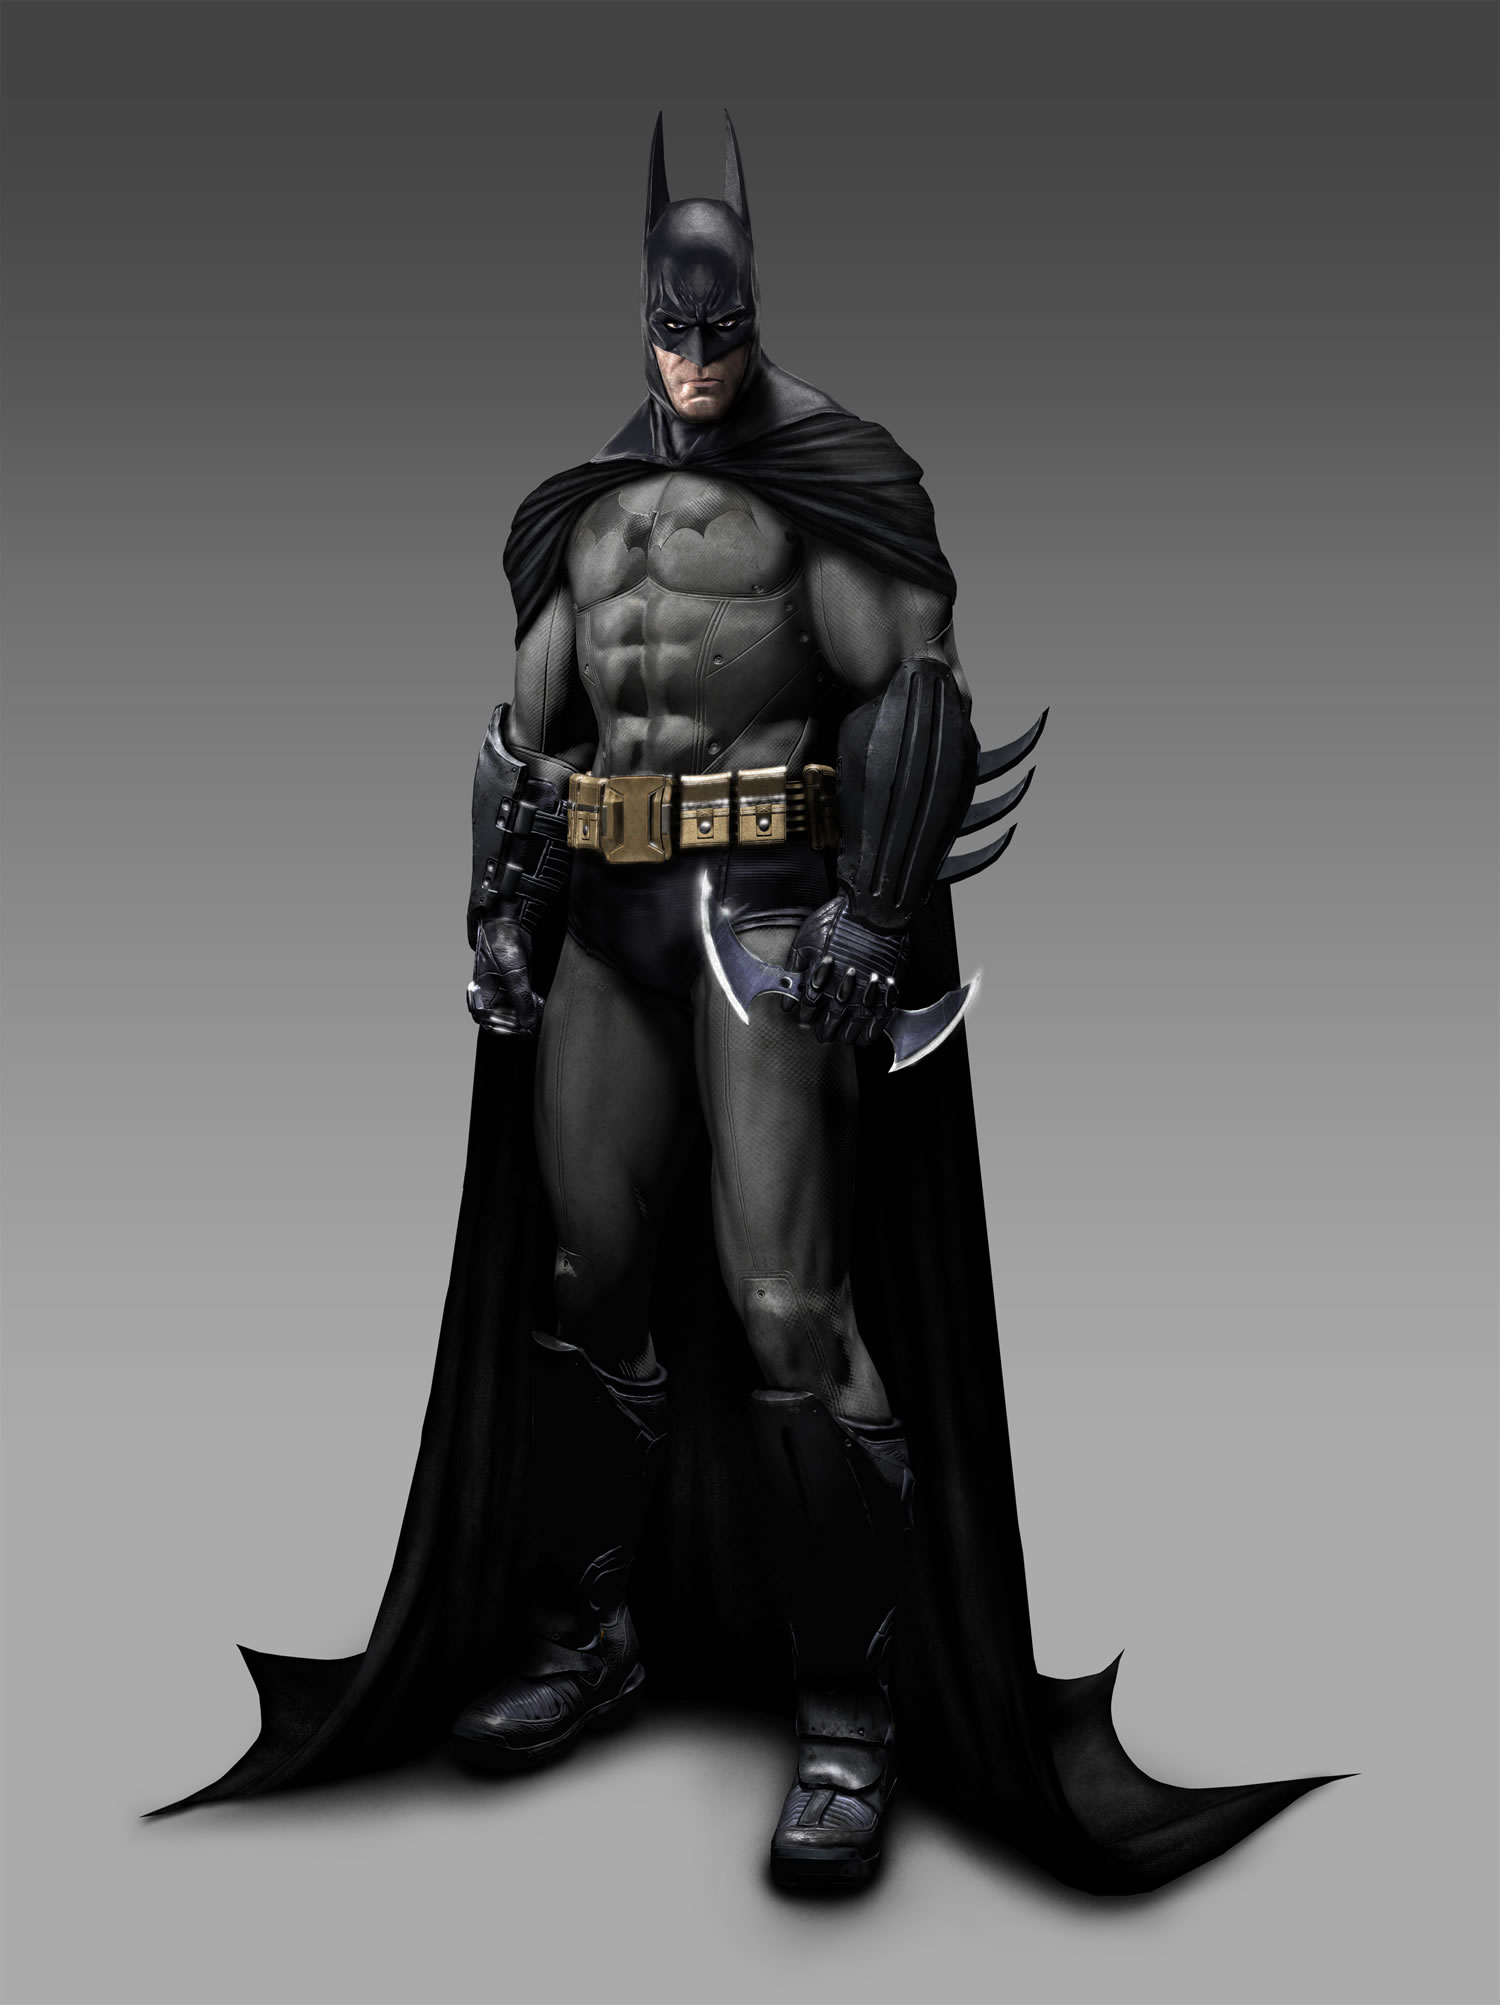 http://img1.wikia.nocookie.net/__cb20110610104751/batman/images/7/79/Batman-arkham-asylum-artwork-batman.jpg